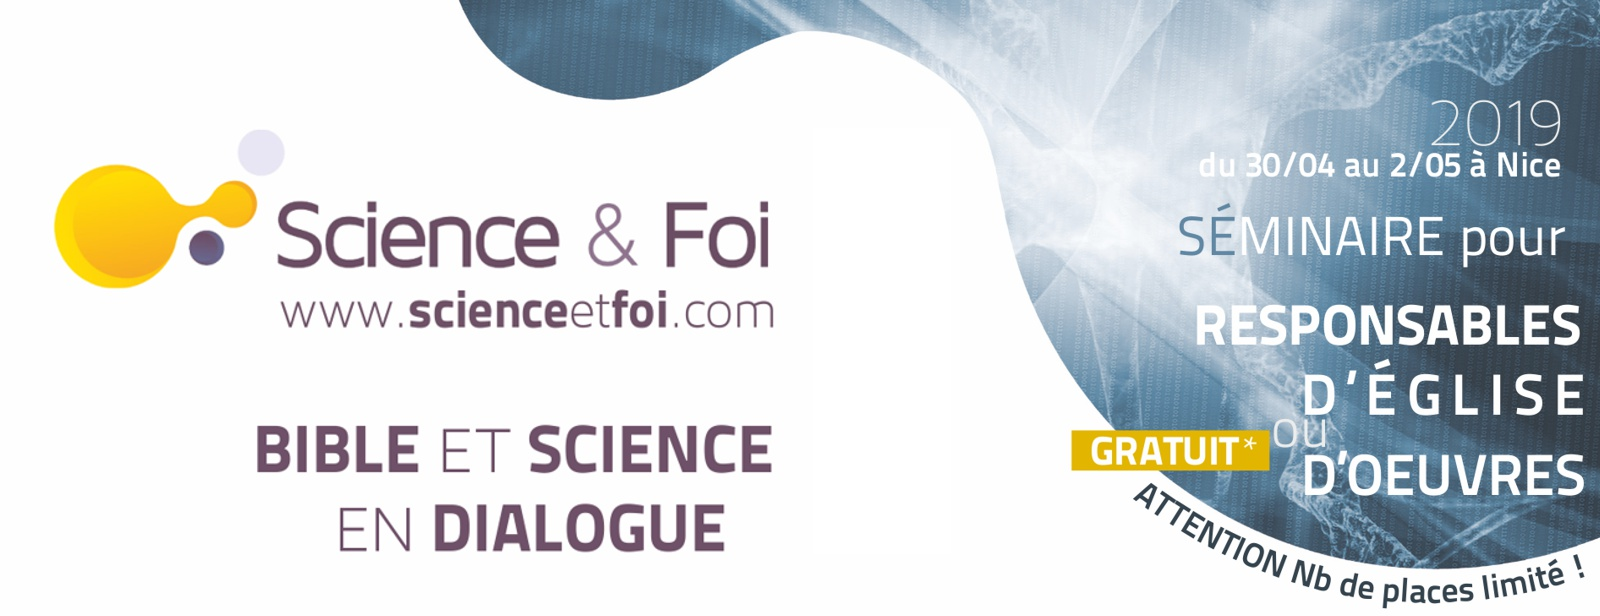 Science & Foi anime un séminaire Bible et science en dialogue du 30/04 au 2/05 2019